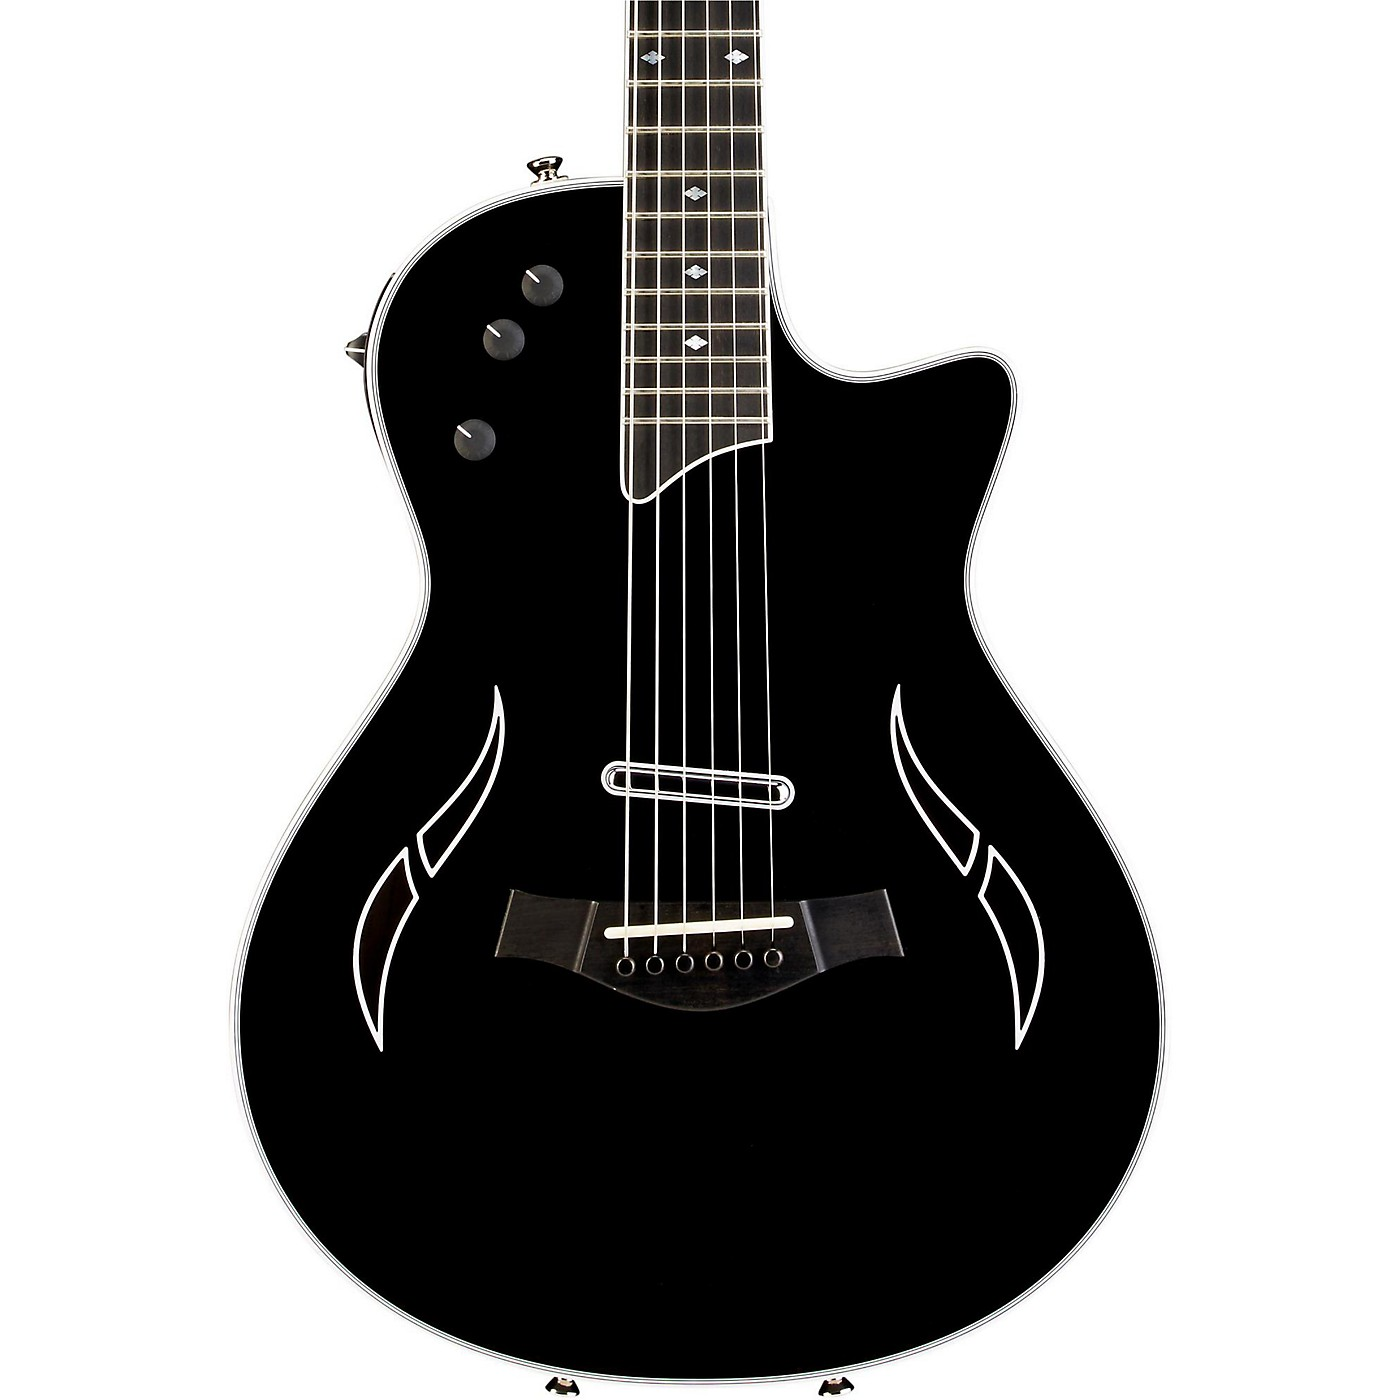 Taylor T5z Standard Cutaway T5 Electronics Spruce Top Acoustic-Electric Guitar thumbnail